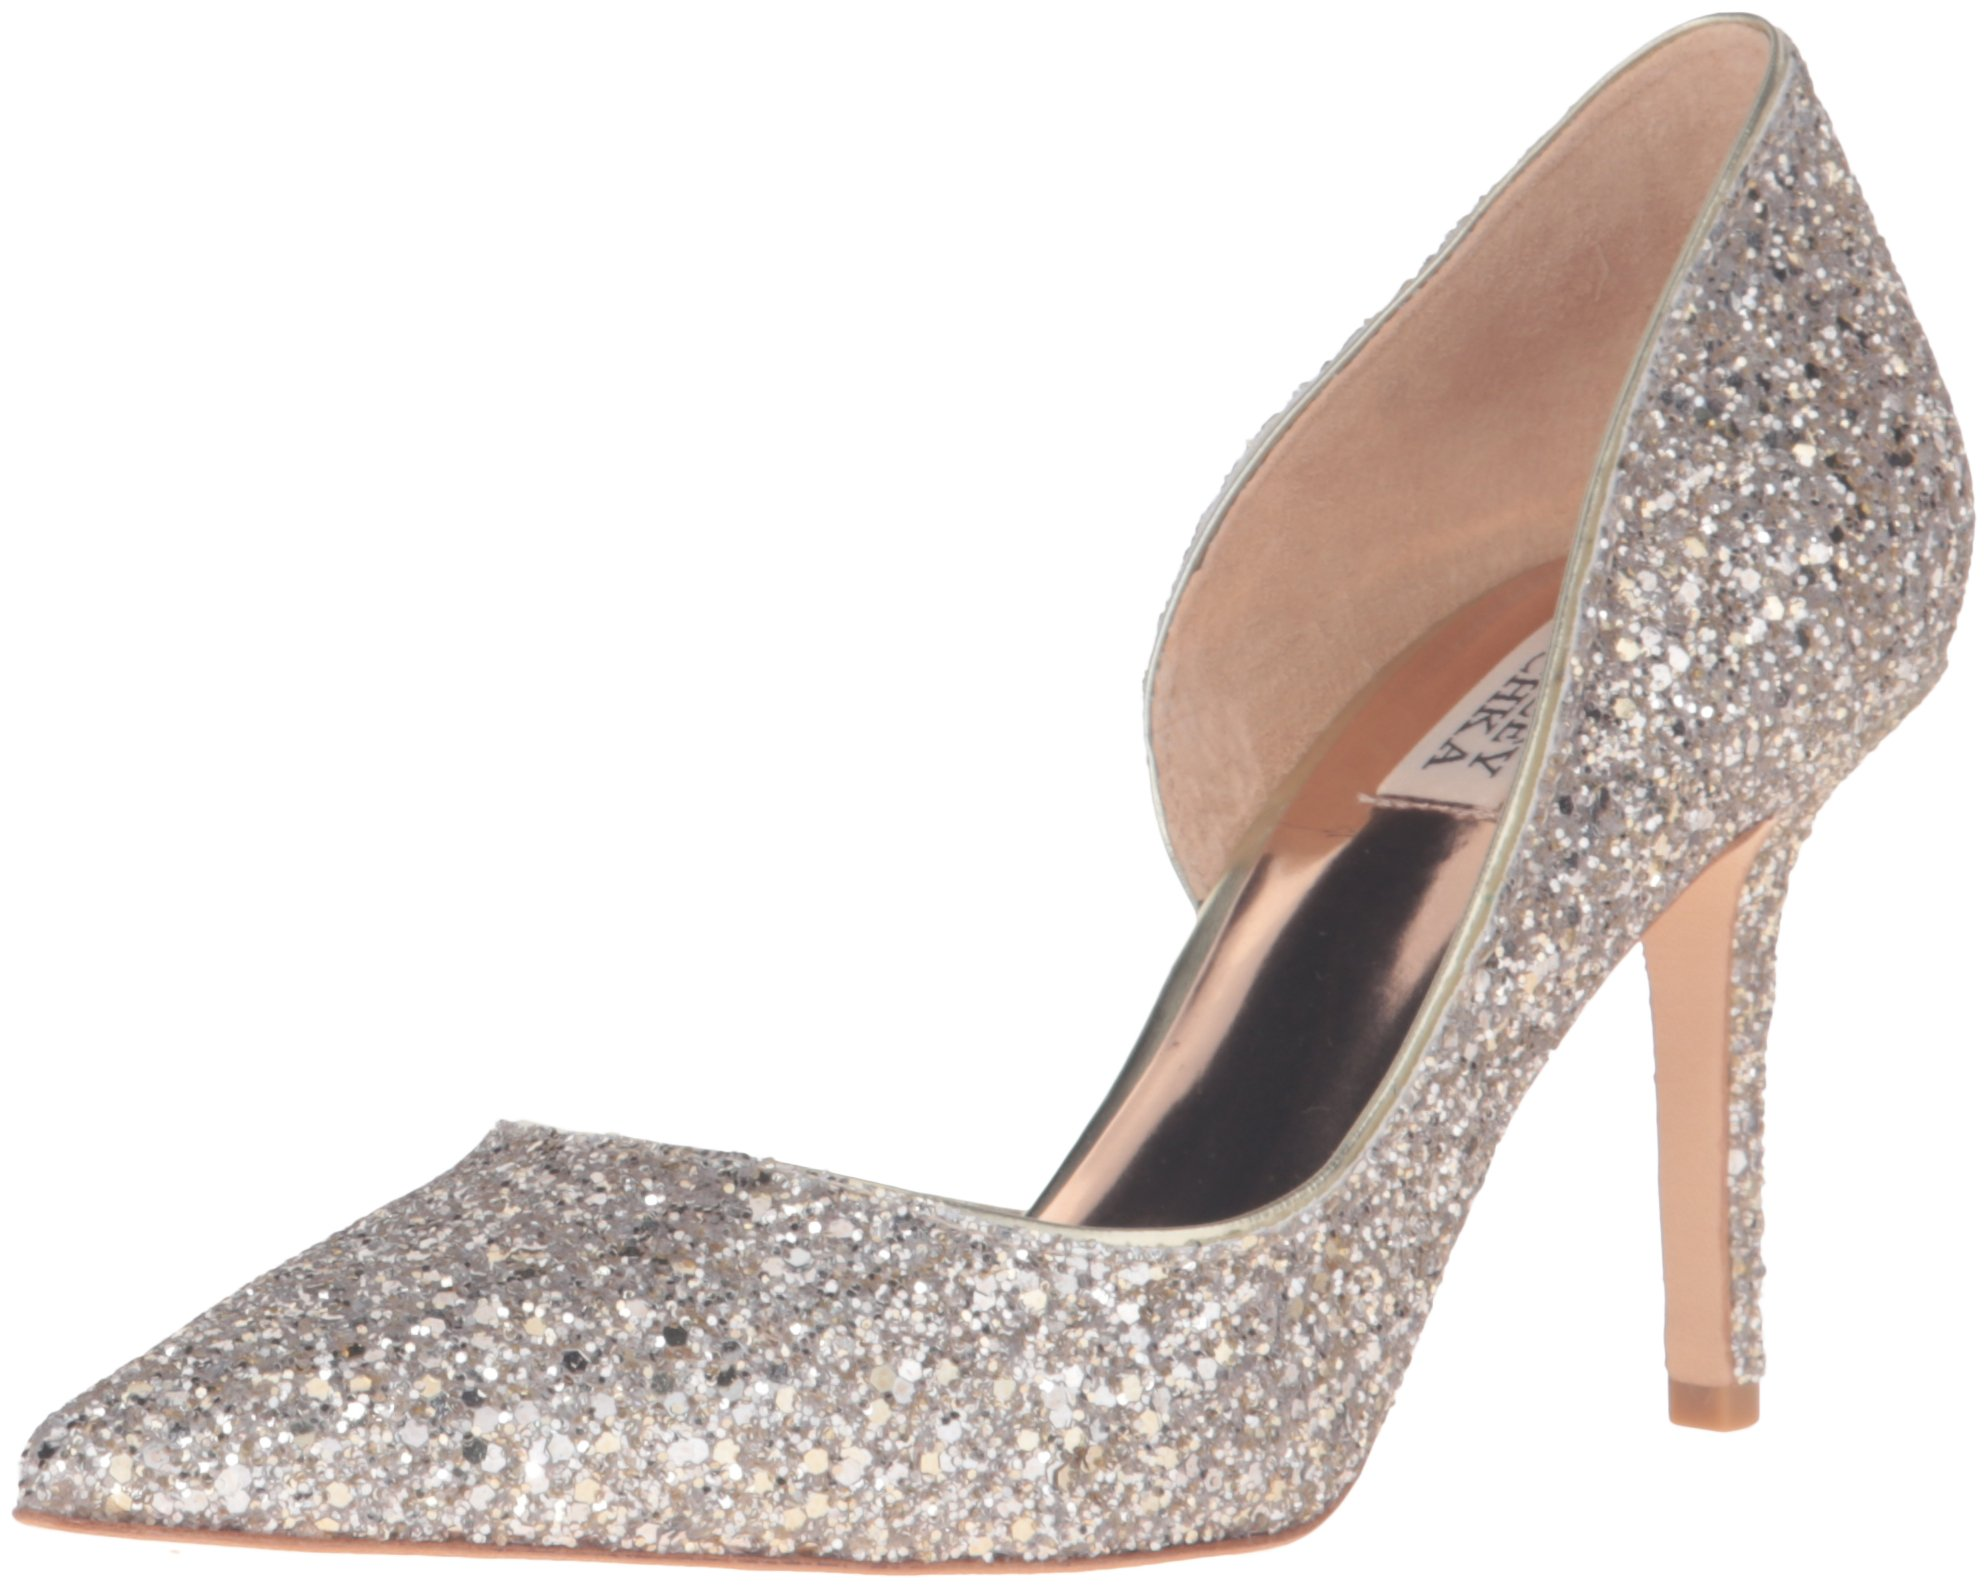 Badgley Mischka Women's Daisy Dress Pump, Platino, 5.5 M US by Badgley Mischka